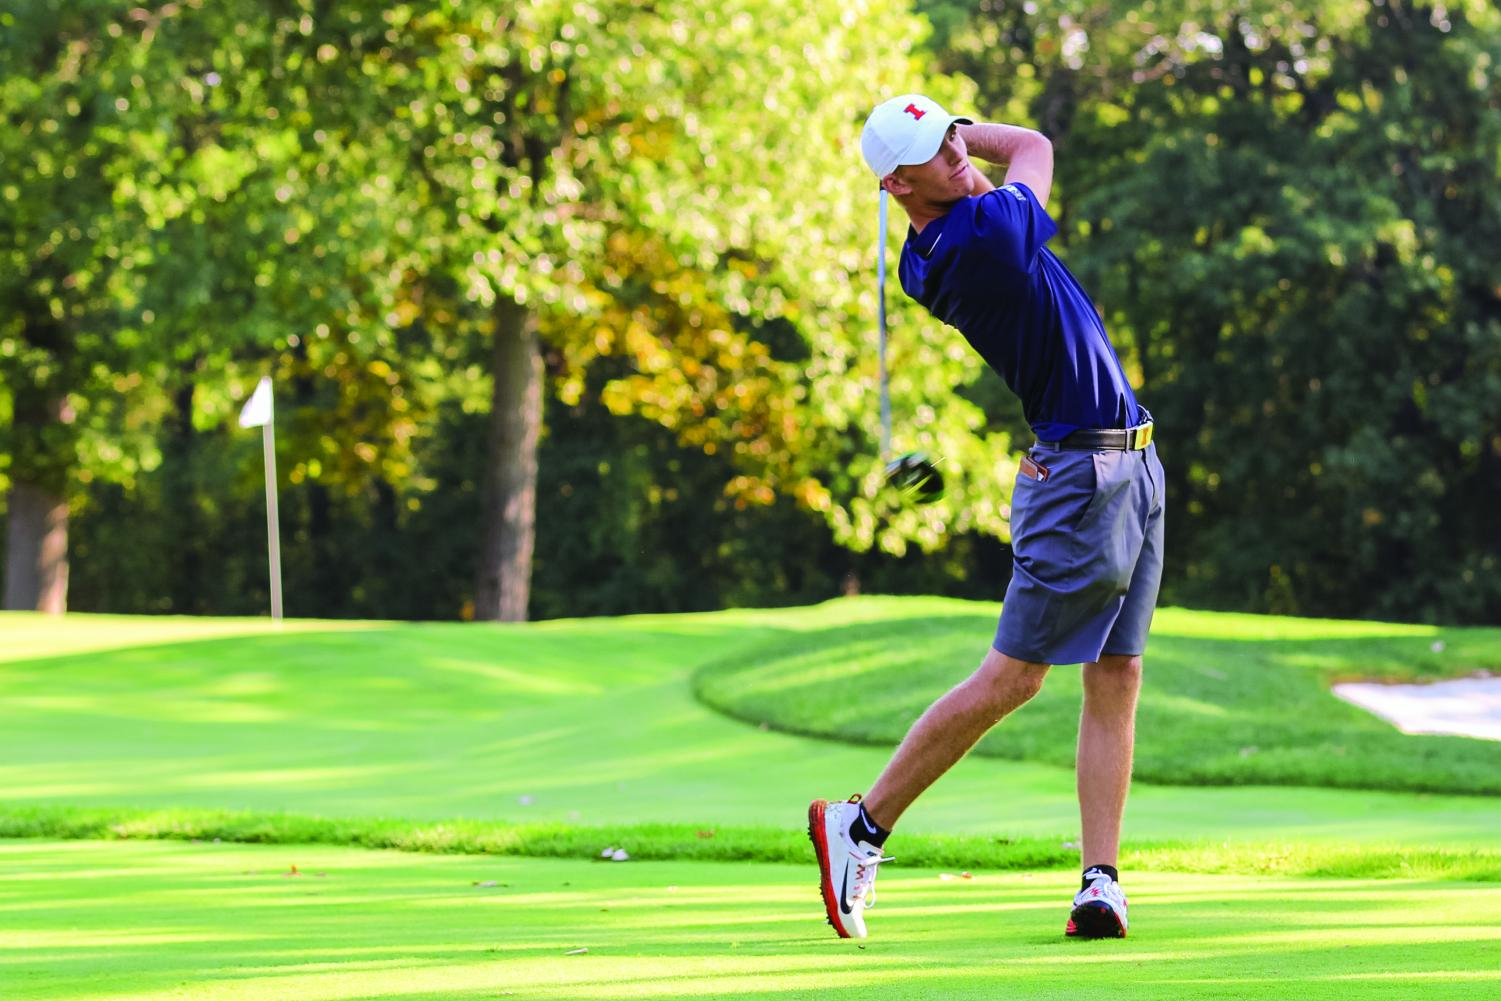 Junior Michael Feagles follows the ball after a drive. Feagles will look to build on his success from last season, and continue the program's success.